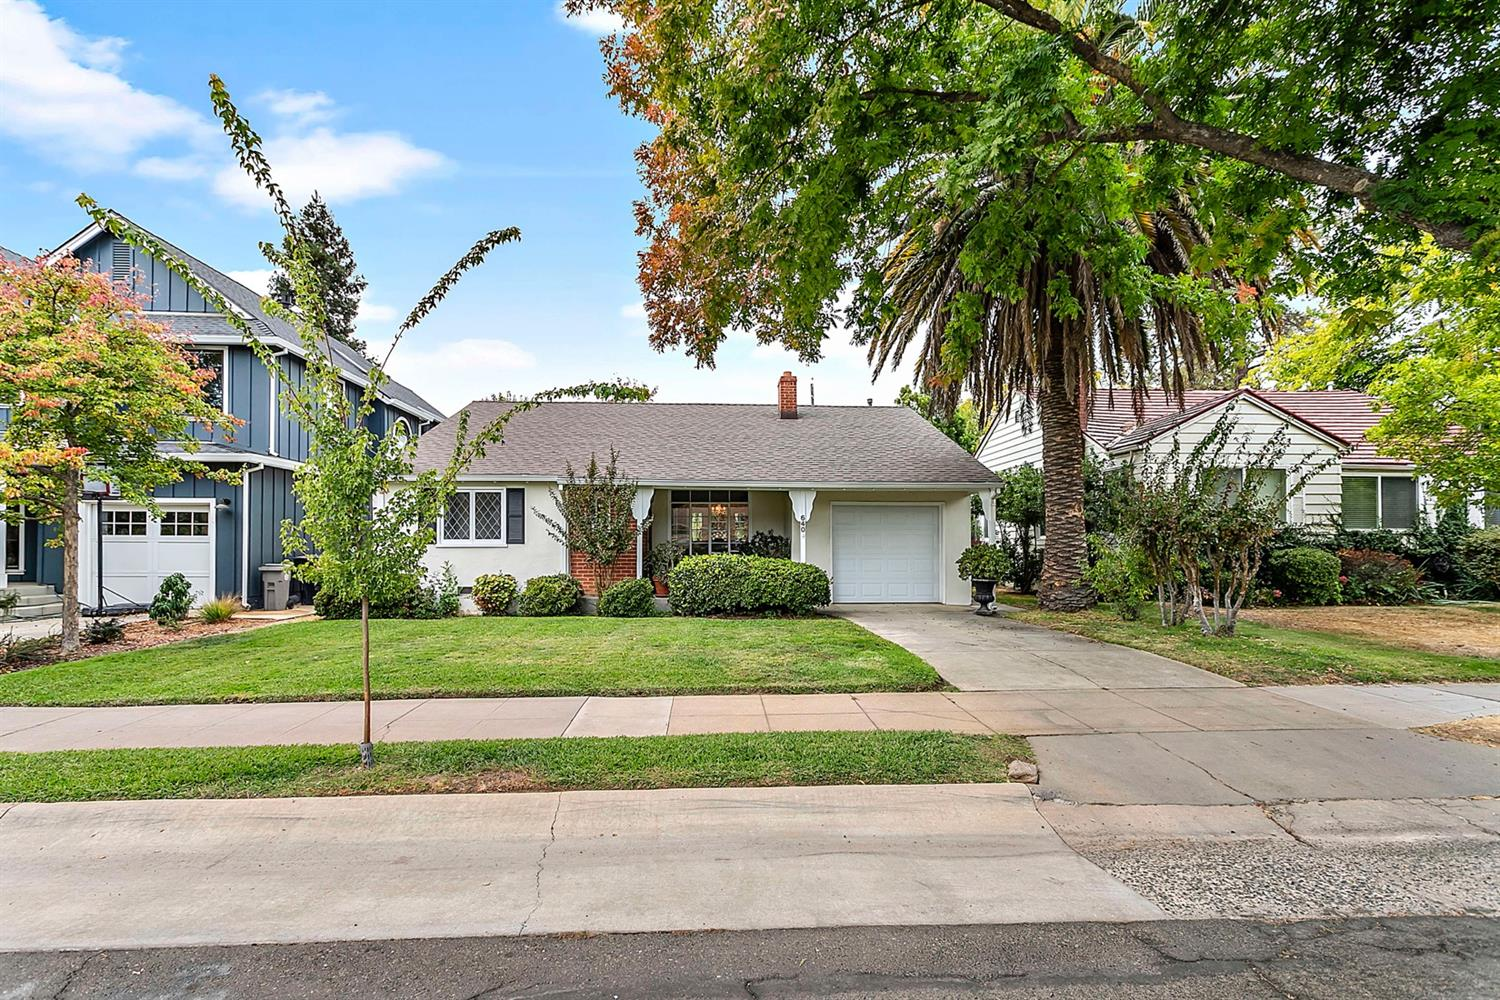 On the market for the first time in over 60 years, this darling 2 bedroom, 1 bathroom East Sacrament